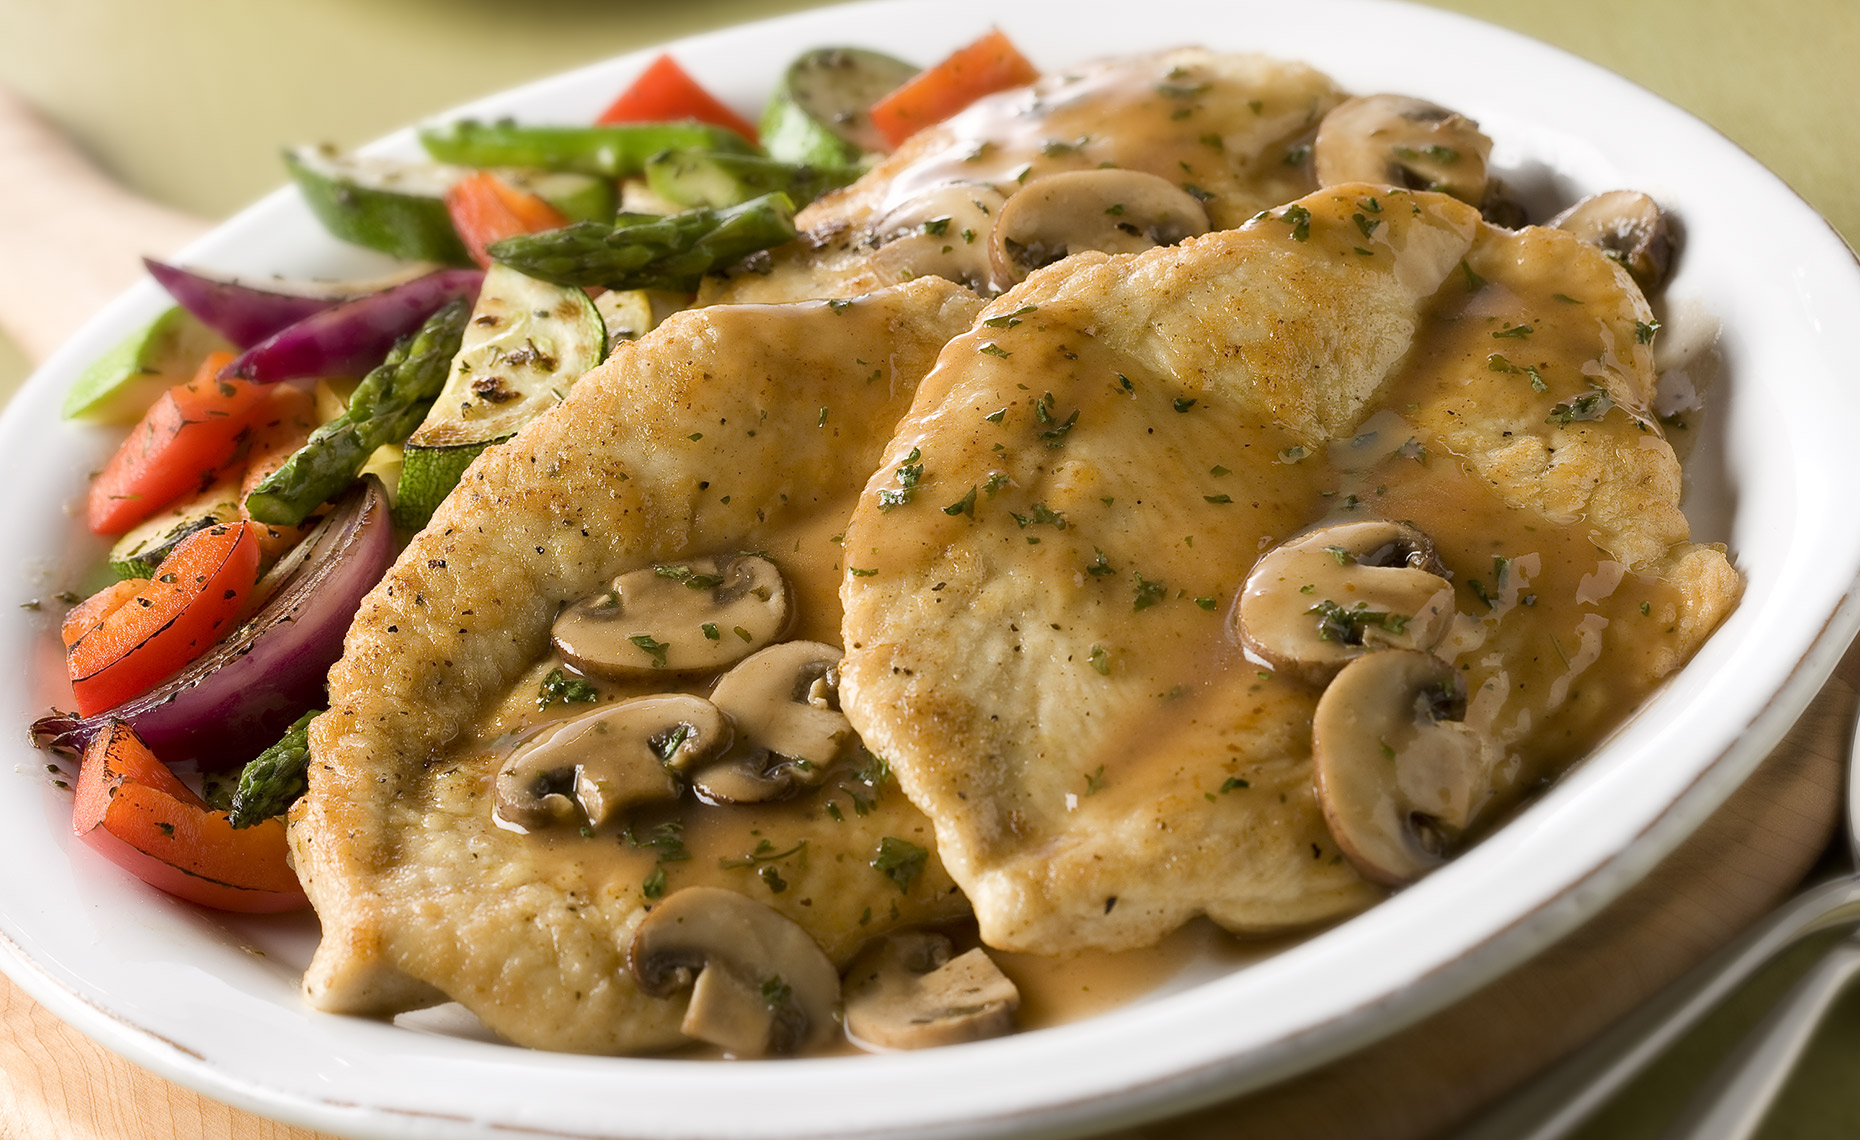 Food Photographer,  Chicken Photography, Poultry Photography | Pohuski Studios,  Chicken Marsala